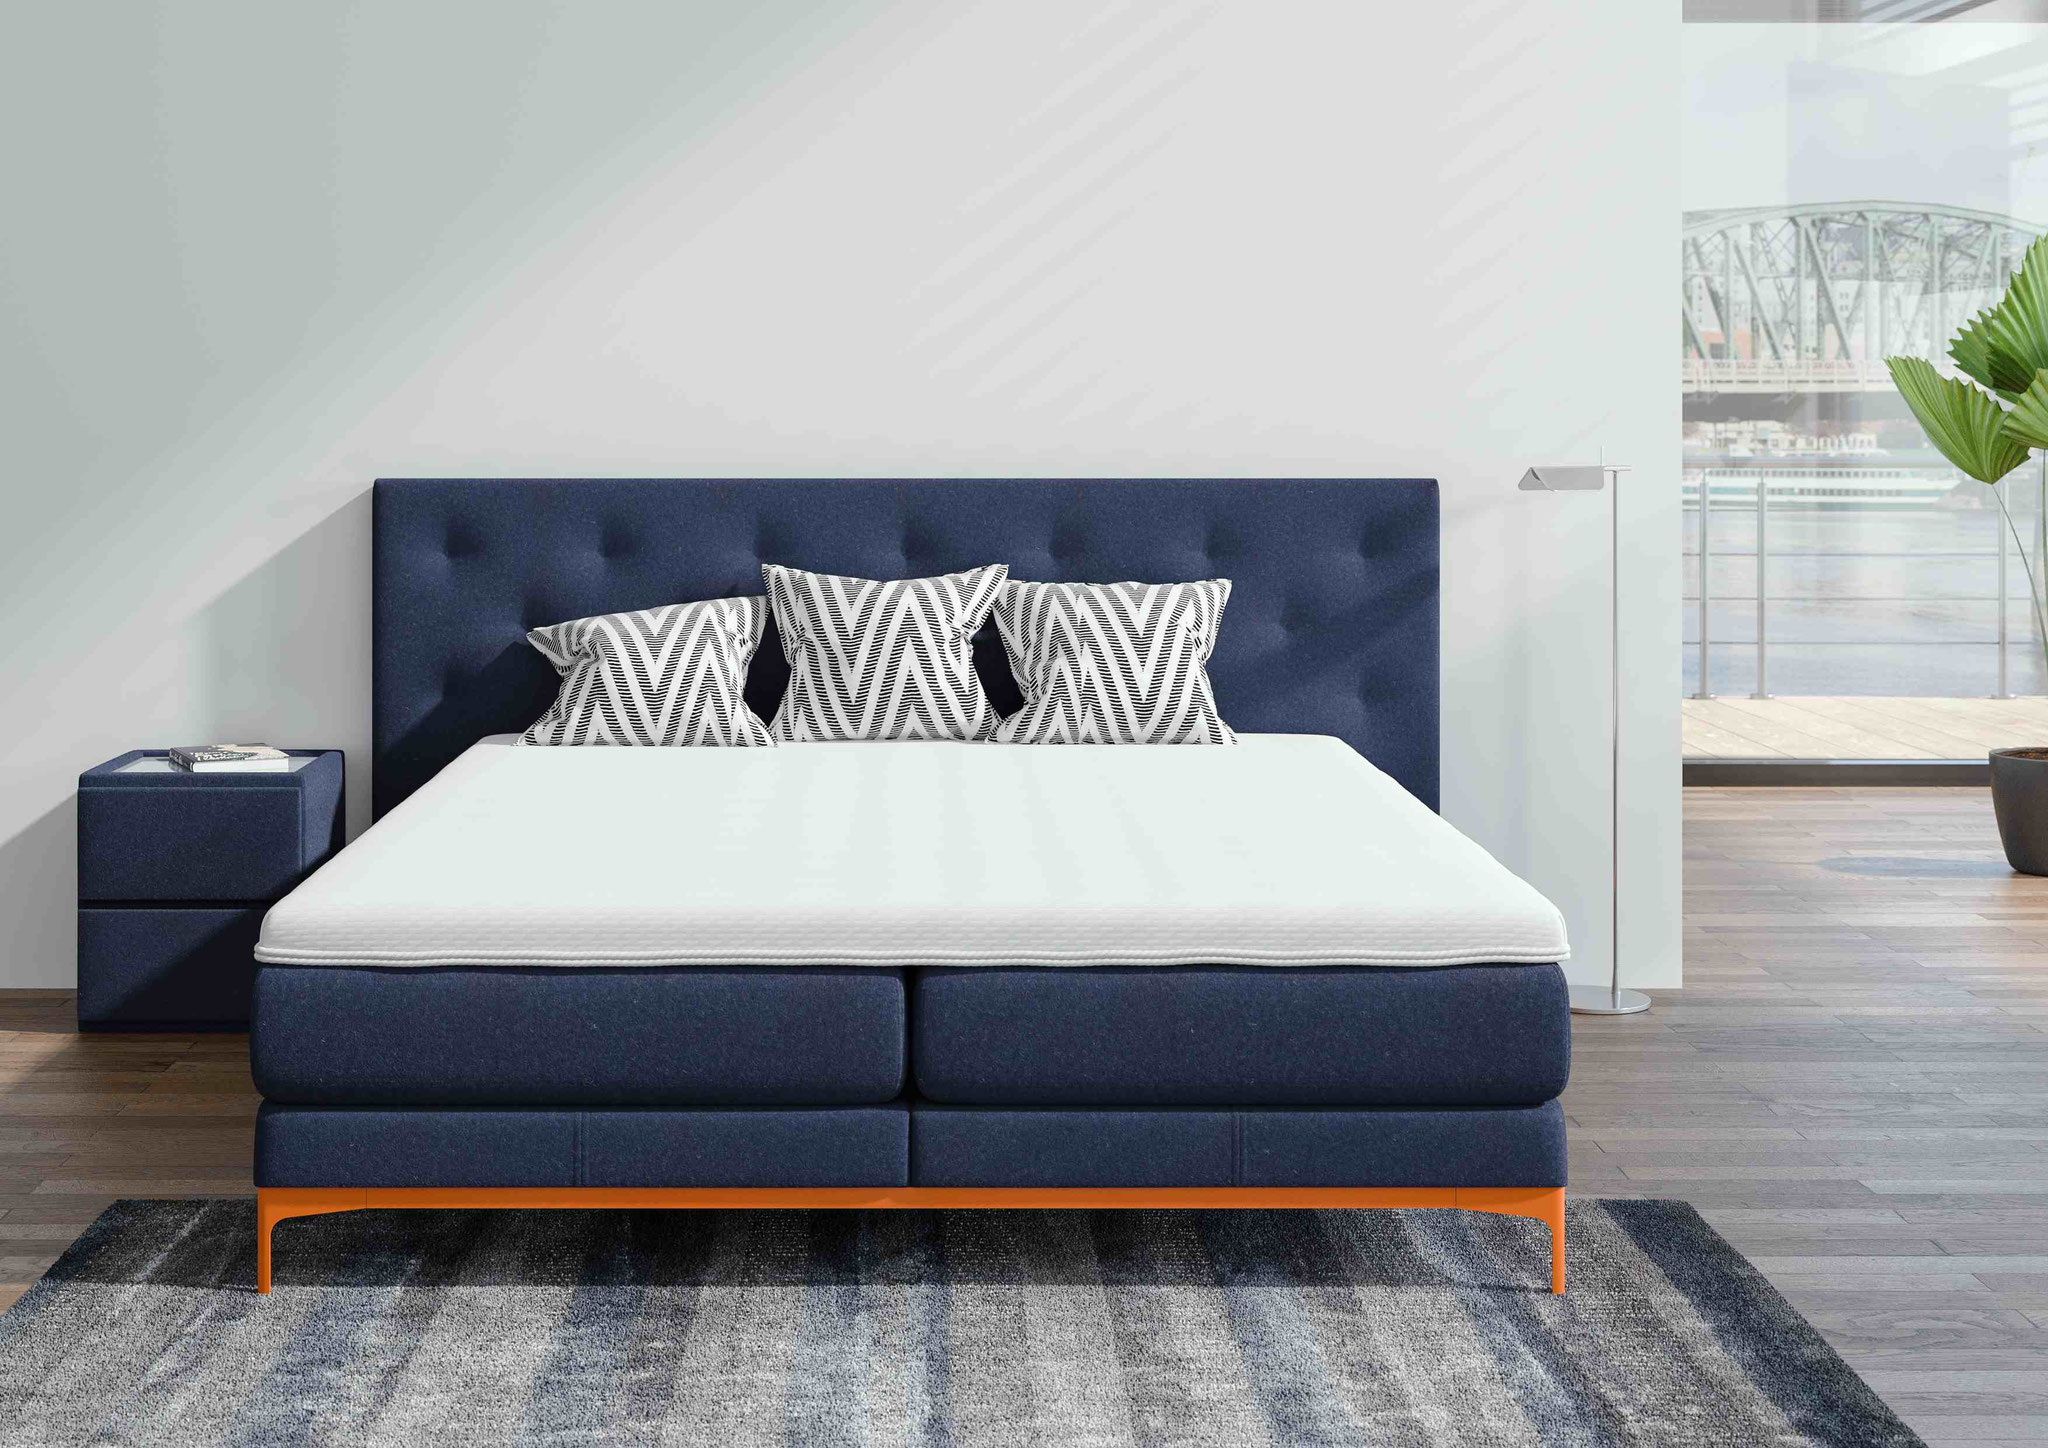 bett matratzen tempur boxspring bettenwelt le monde du lit matratzen bettwaren br gg bei. Black Bedroom Furniture Sets. Home Design Ideas